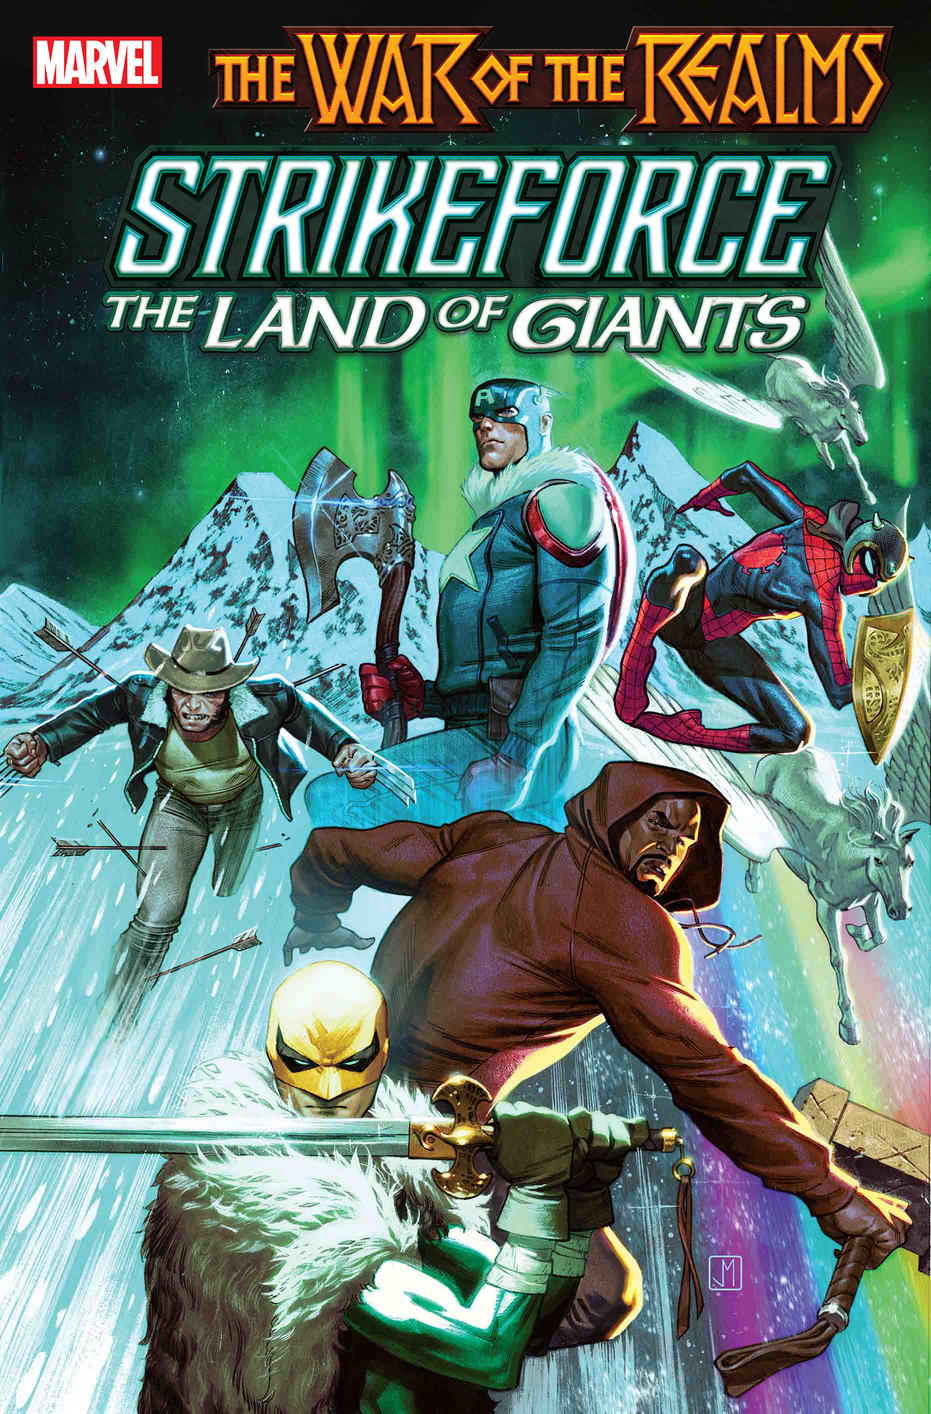 Guerra dos Reinos - War of the Realms - Strikeforce - The Land of Giants - Blog Farofeiros